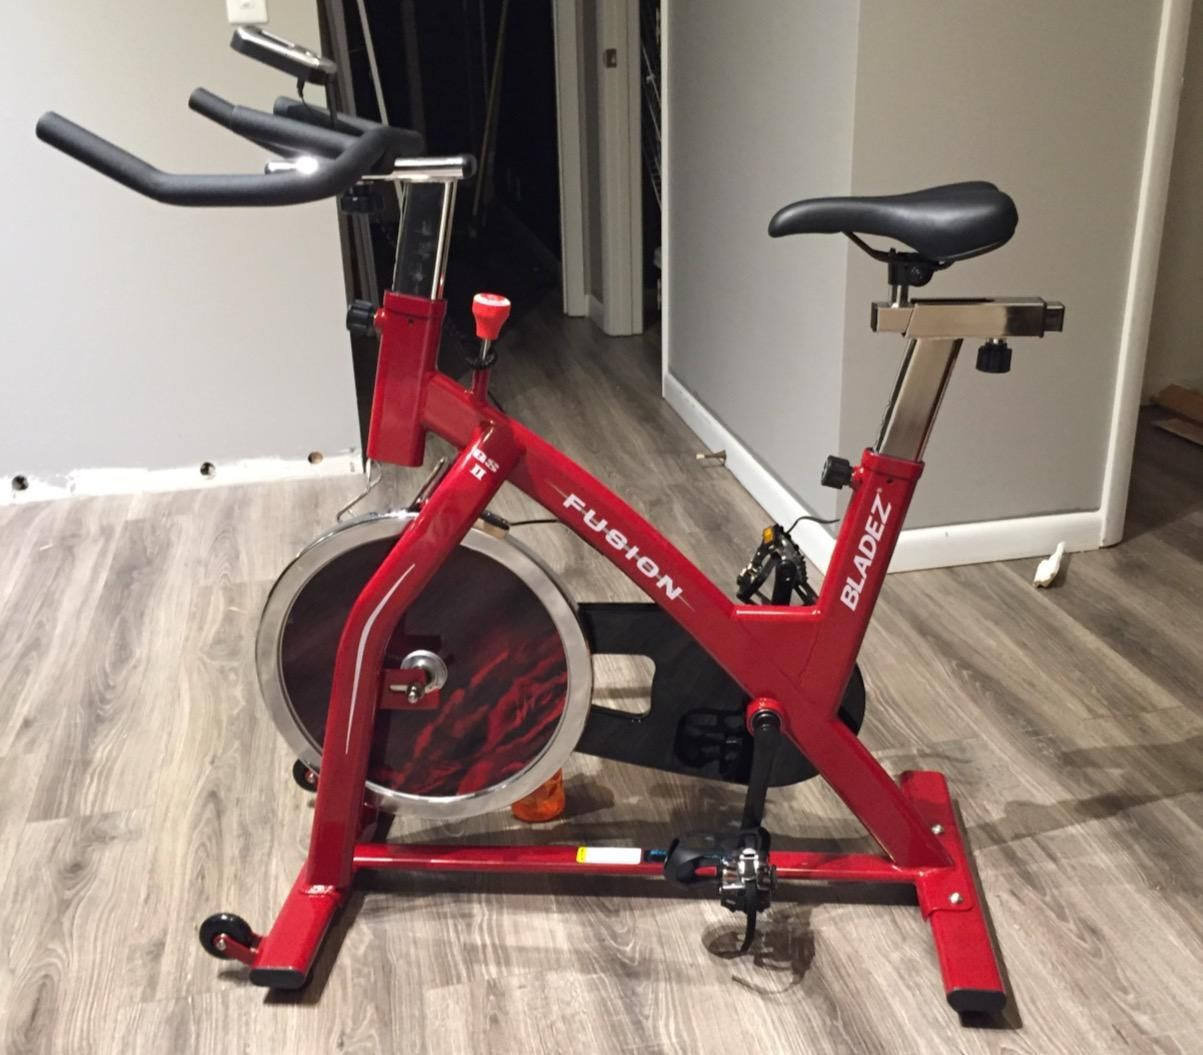 Best Spin Bike Reviews In 2020 Spin Bikes Indoor Spin Bike Spin Bike Bicycles